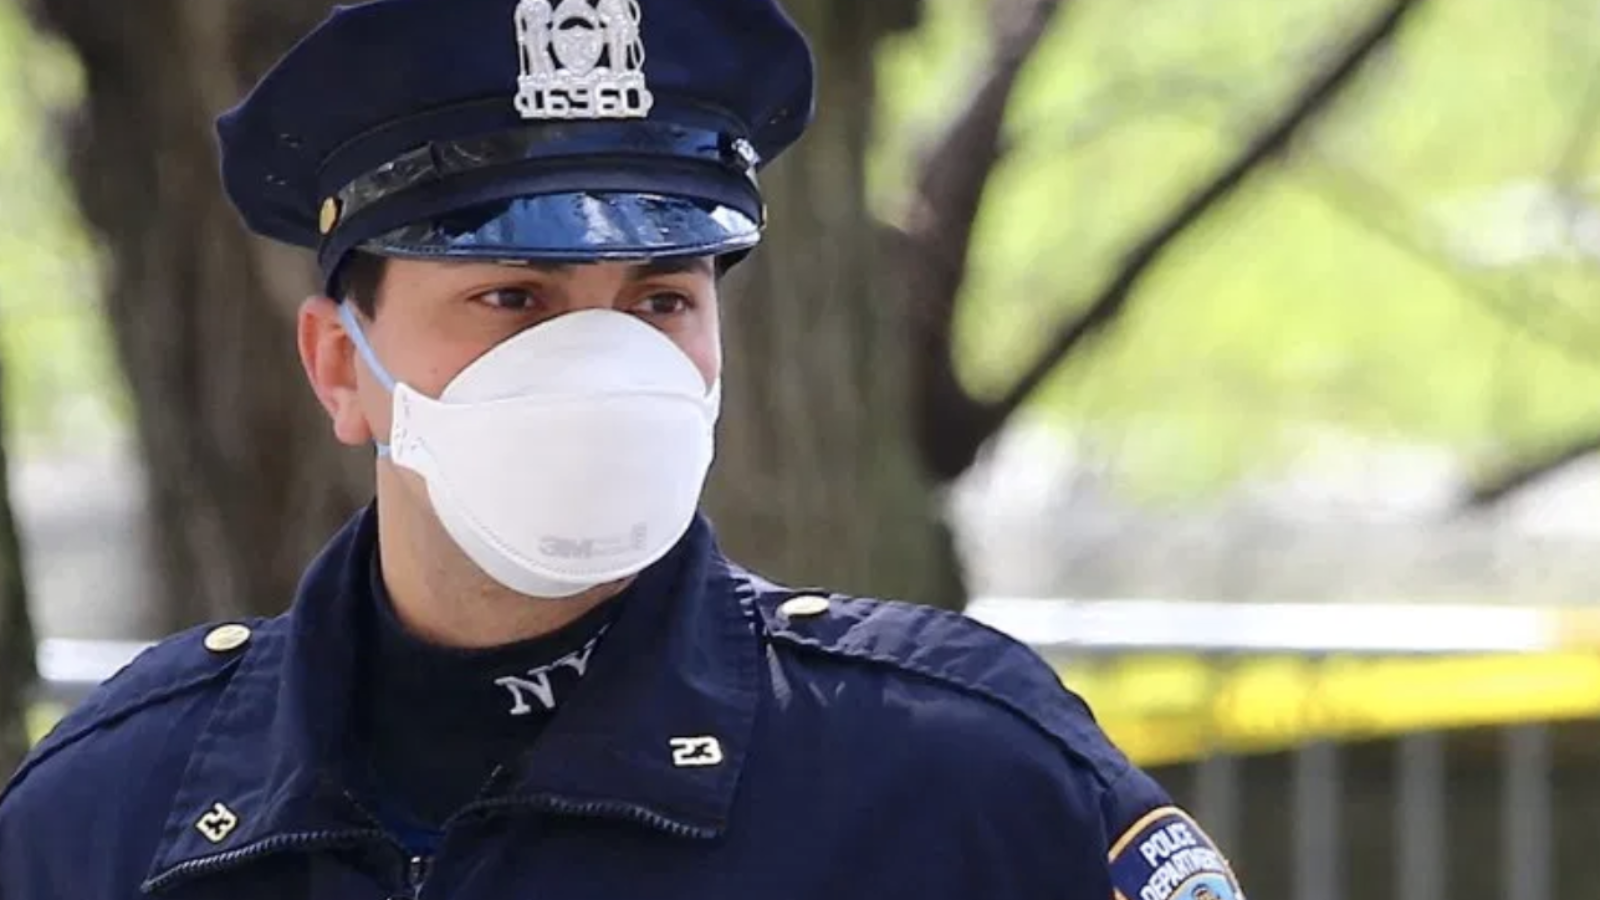 A police officer wears an N95 mask